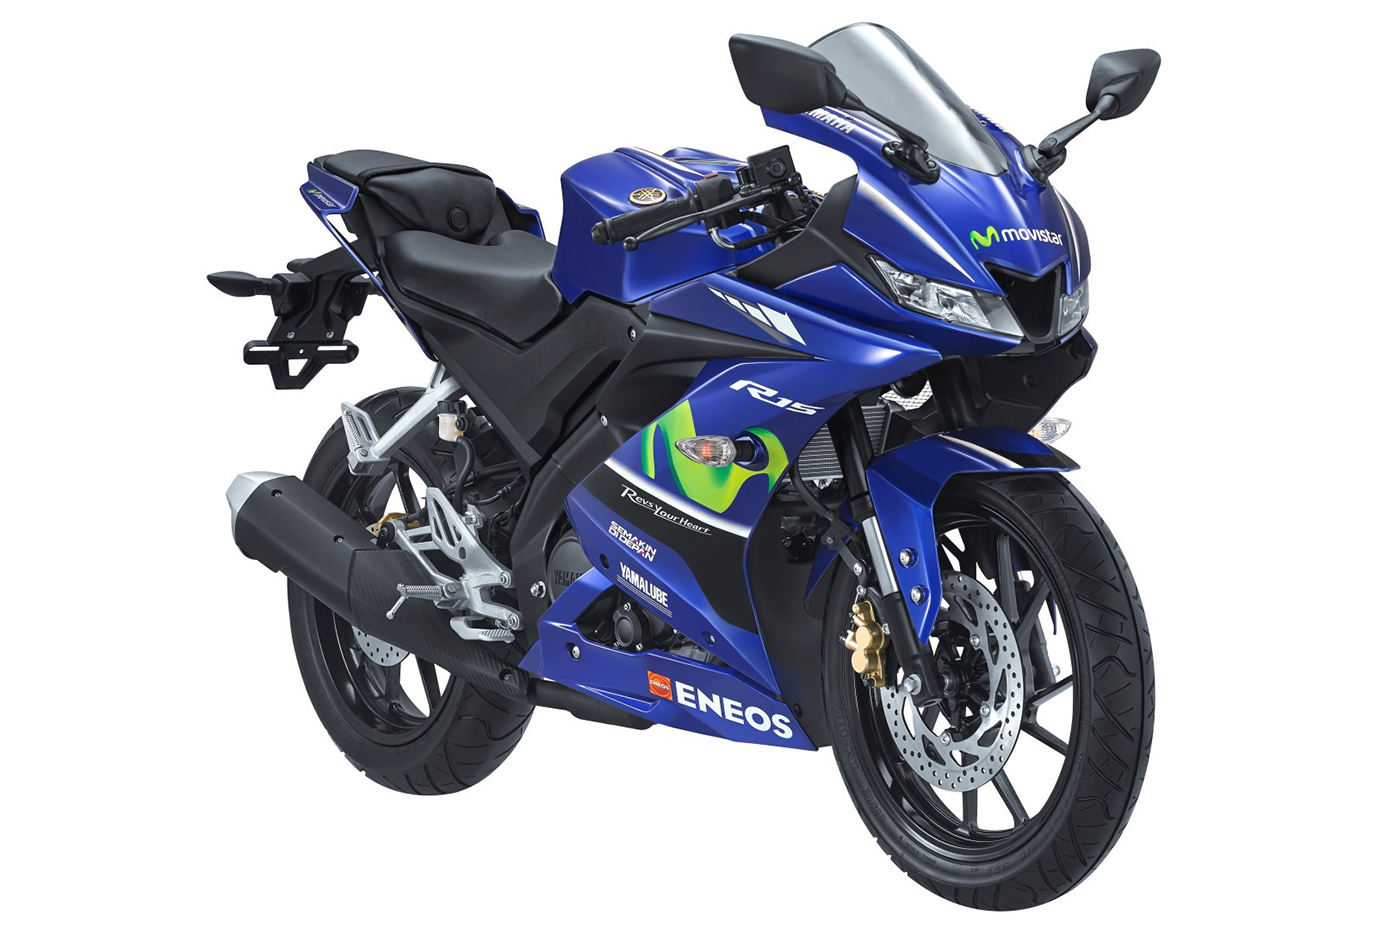 Yamaha r15 v3 0 v nvx 155 c th m b n movistar for Yamaha r15 v3 price philippines